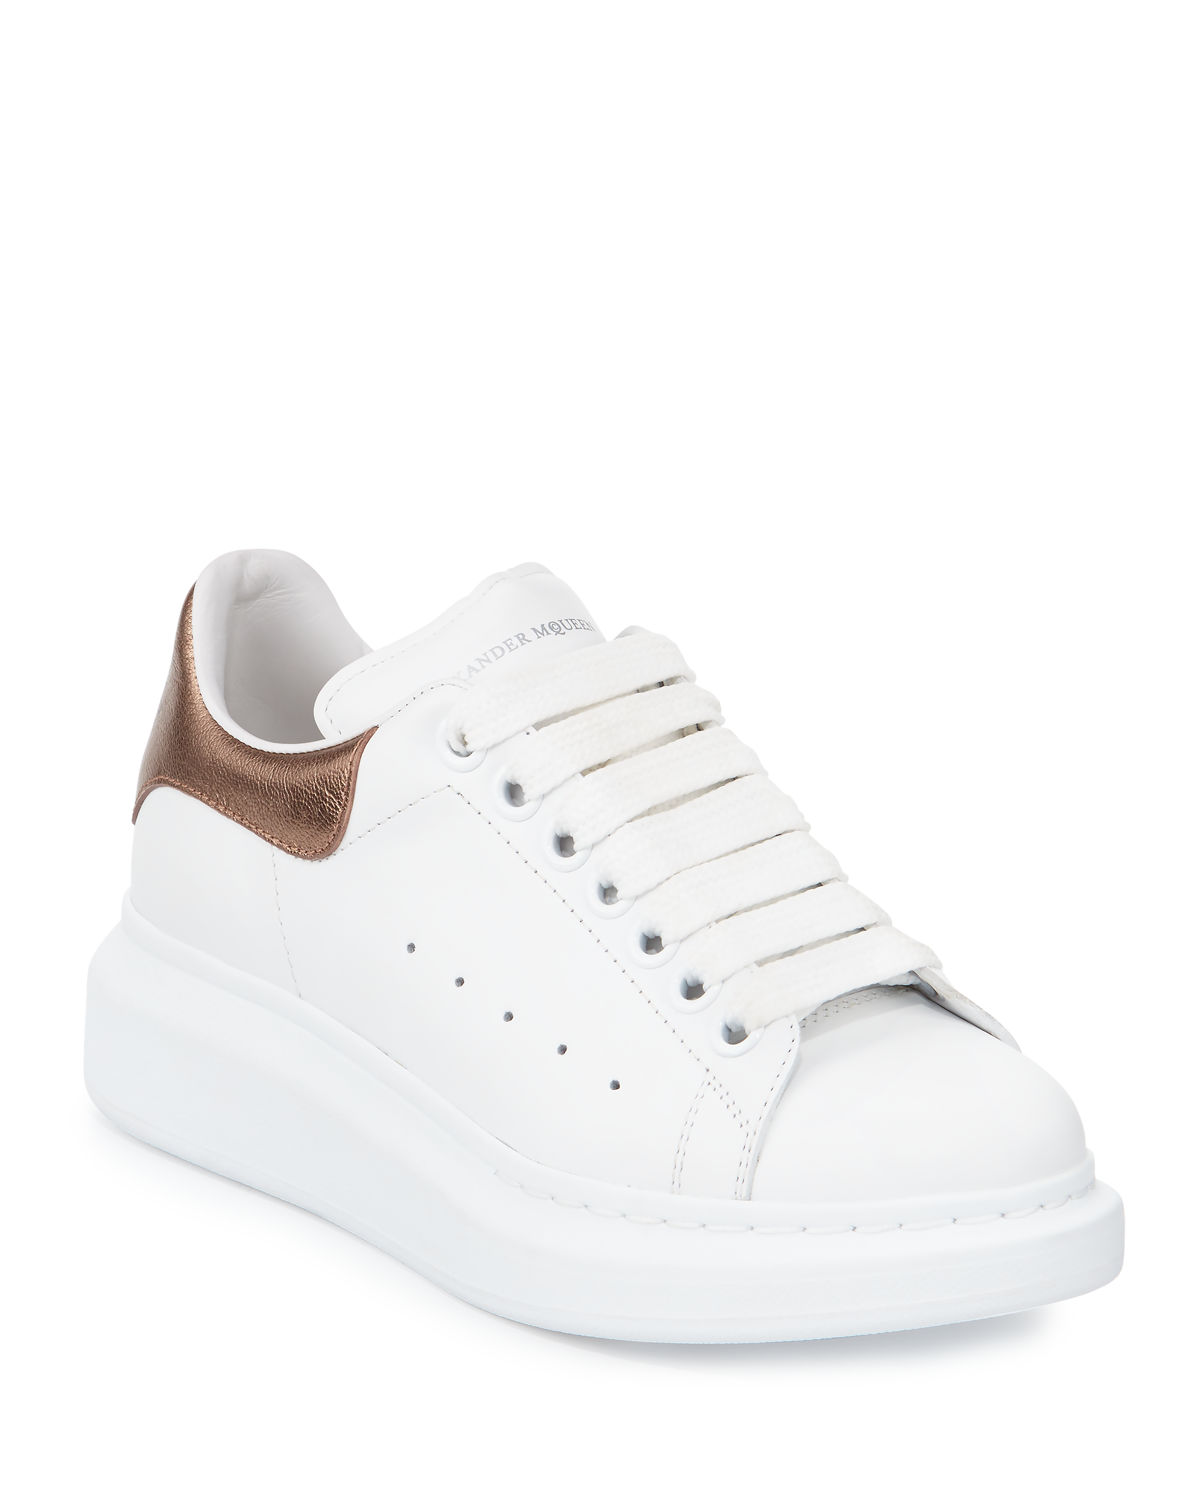 e9955a37e79 Alexander McQueen Leather Lace-Up Platform Sneakers